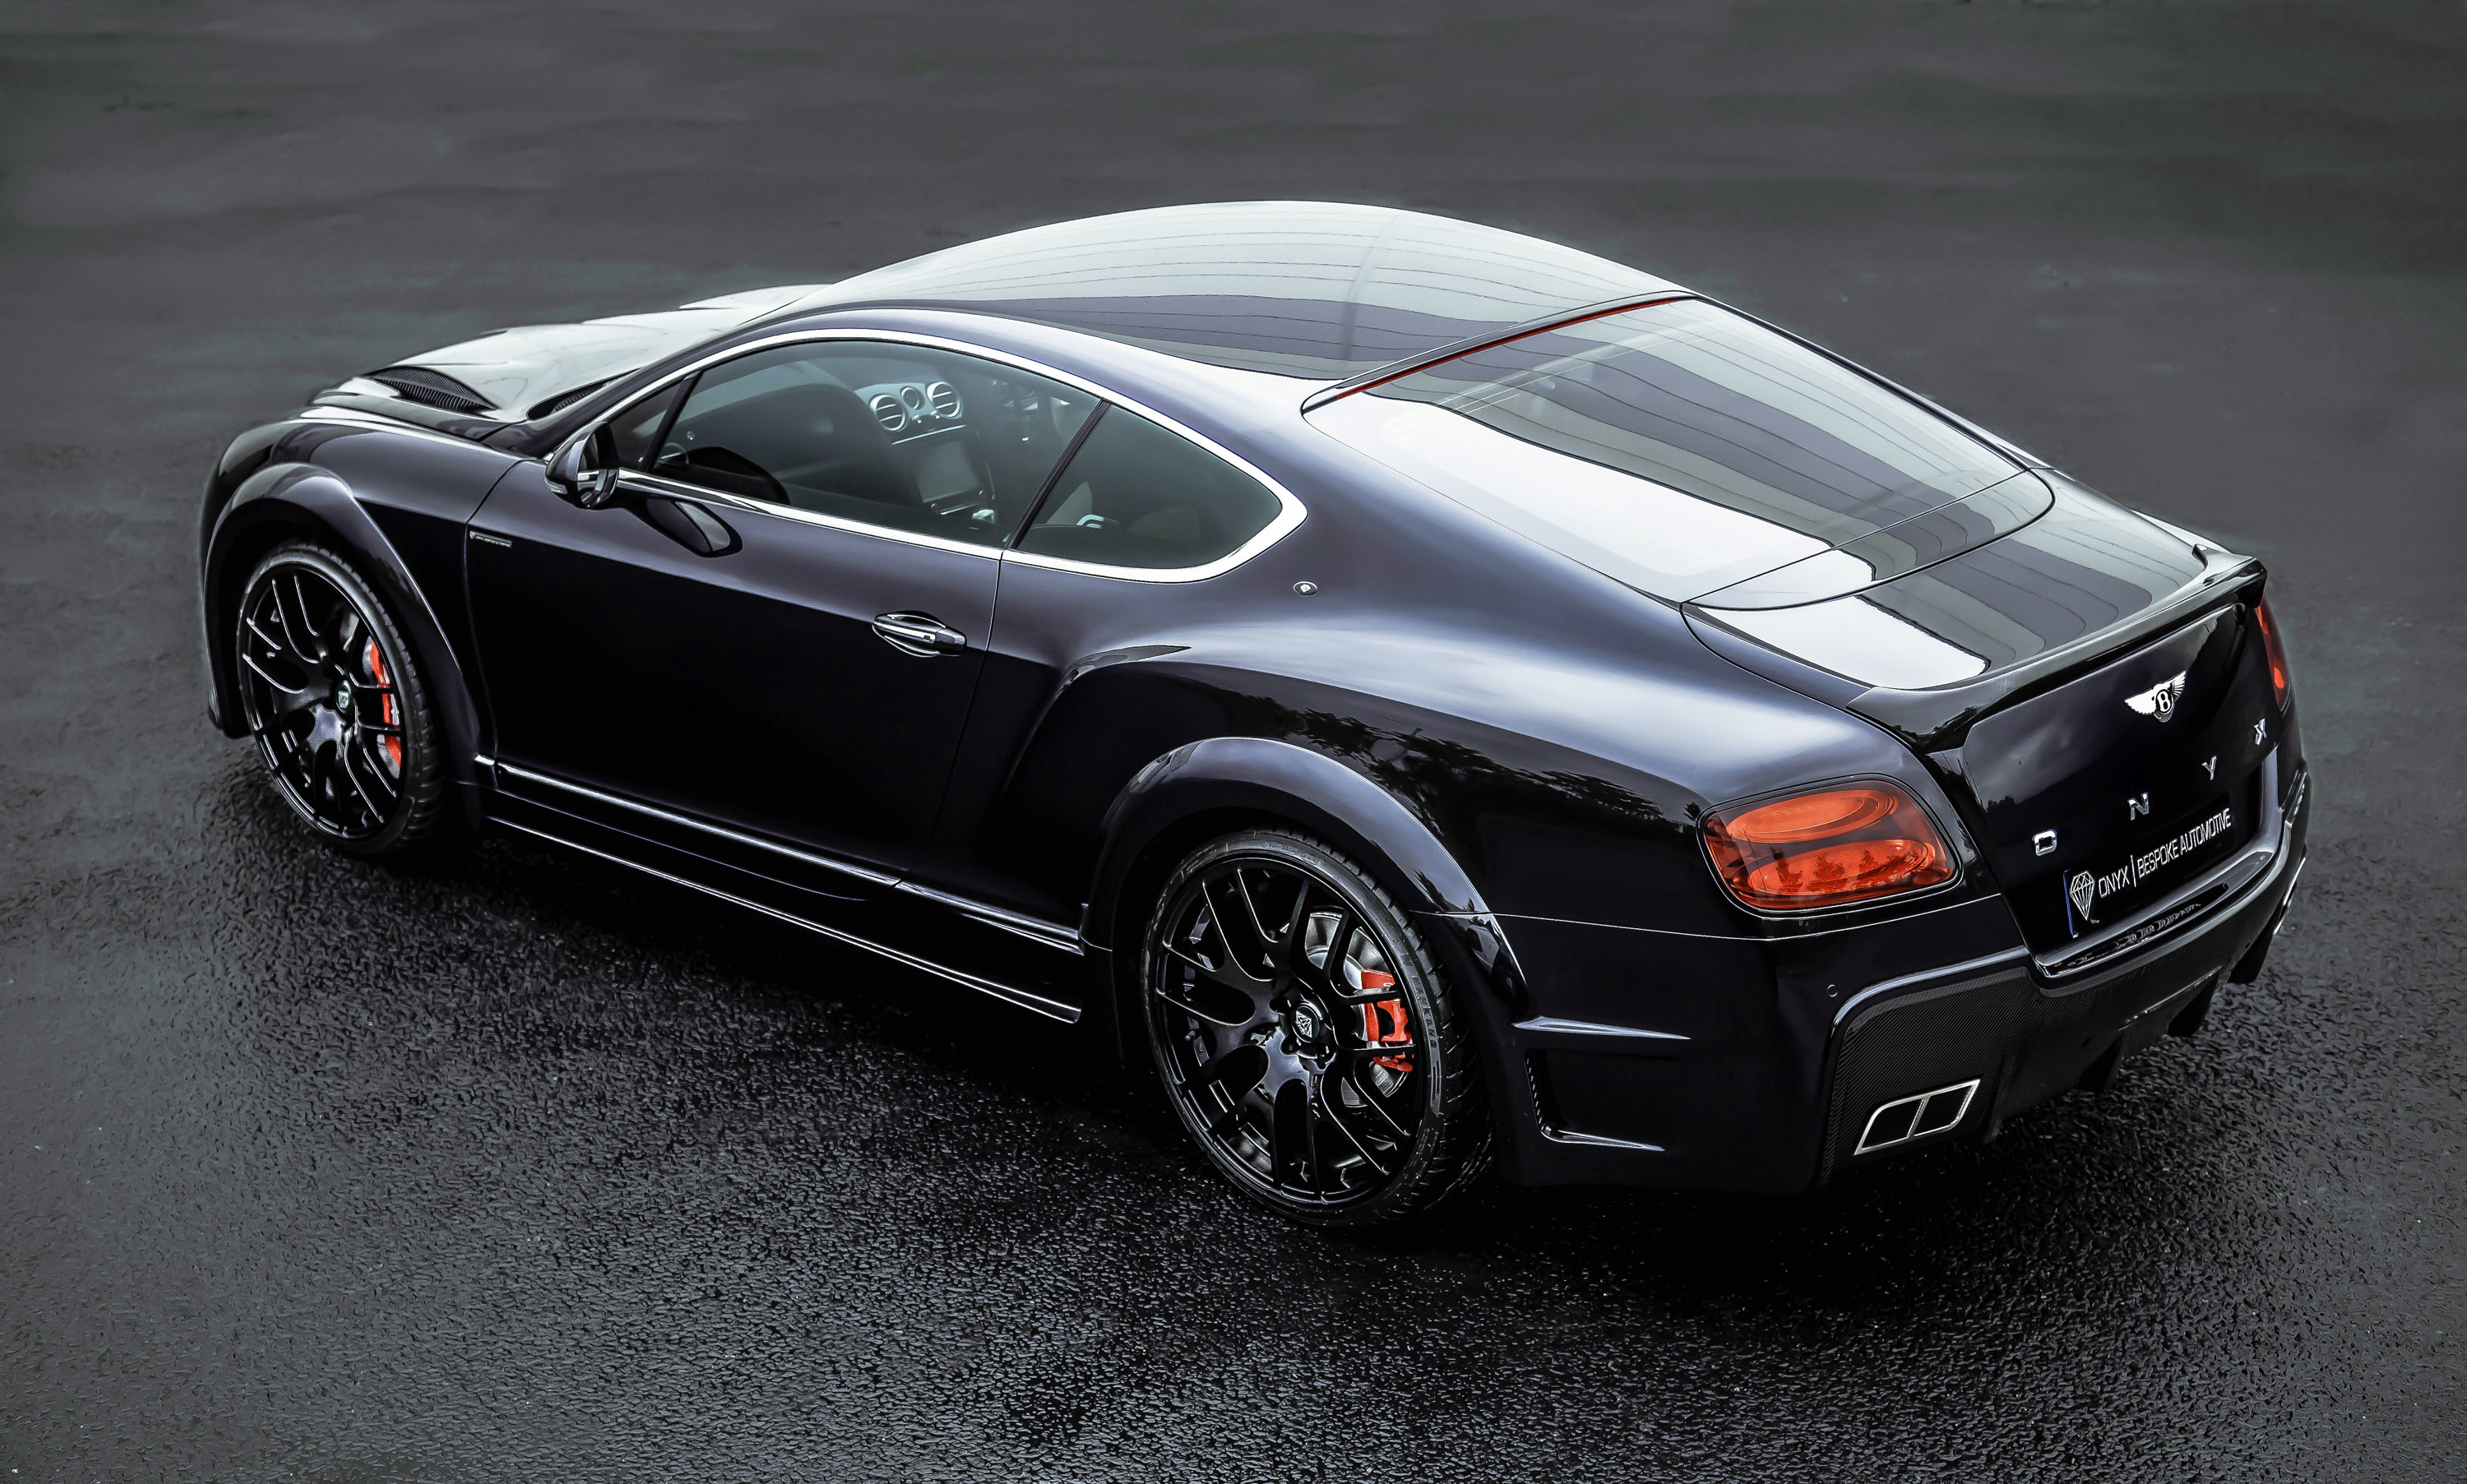 Bentley-Continental-GTVX-Concept-by-ONYX-4